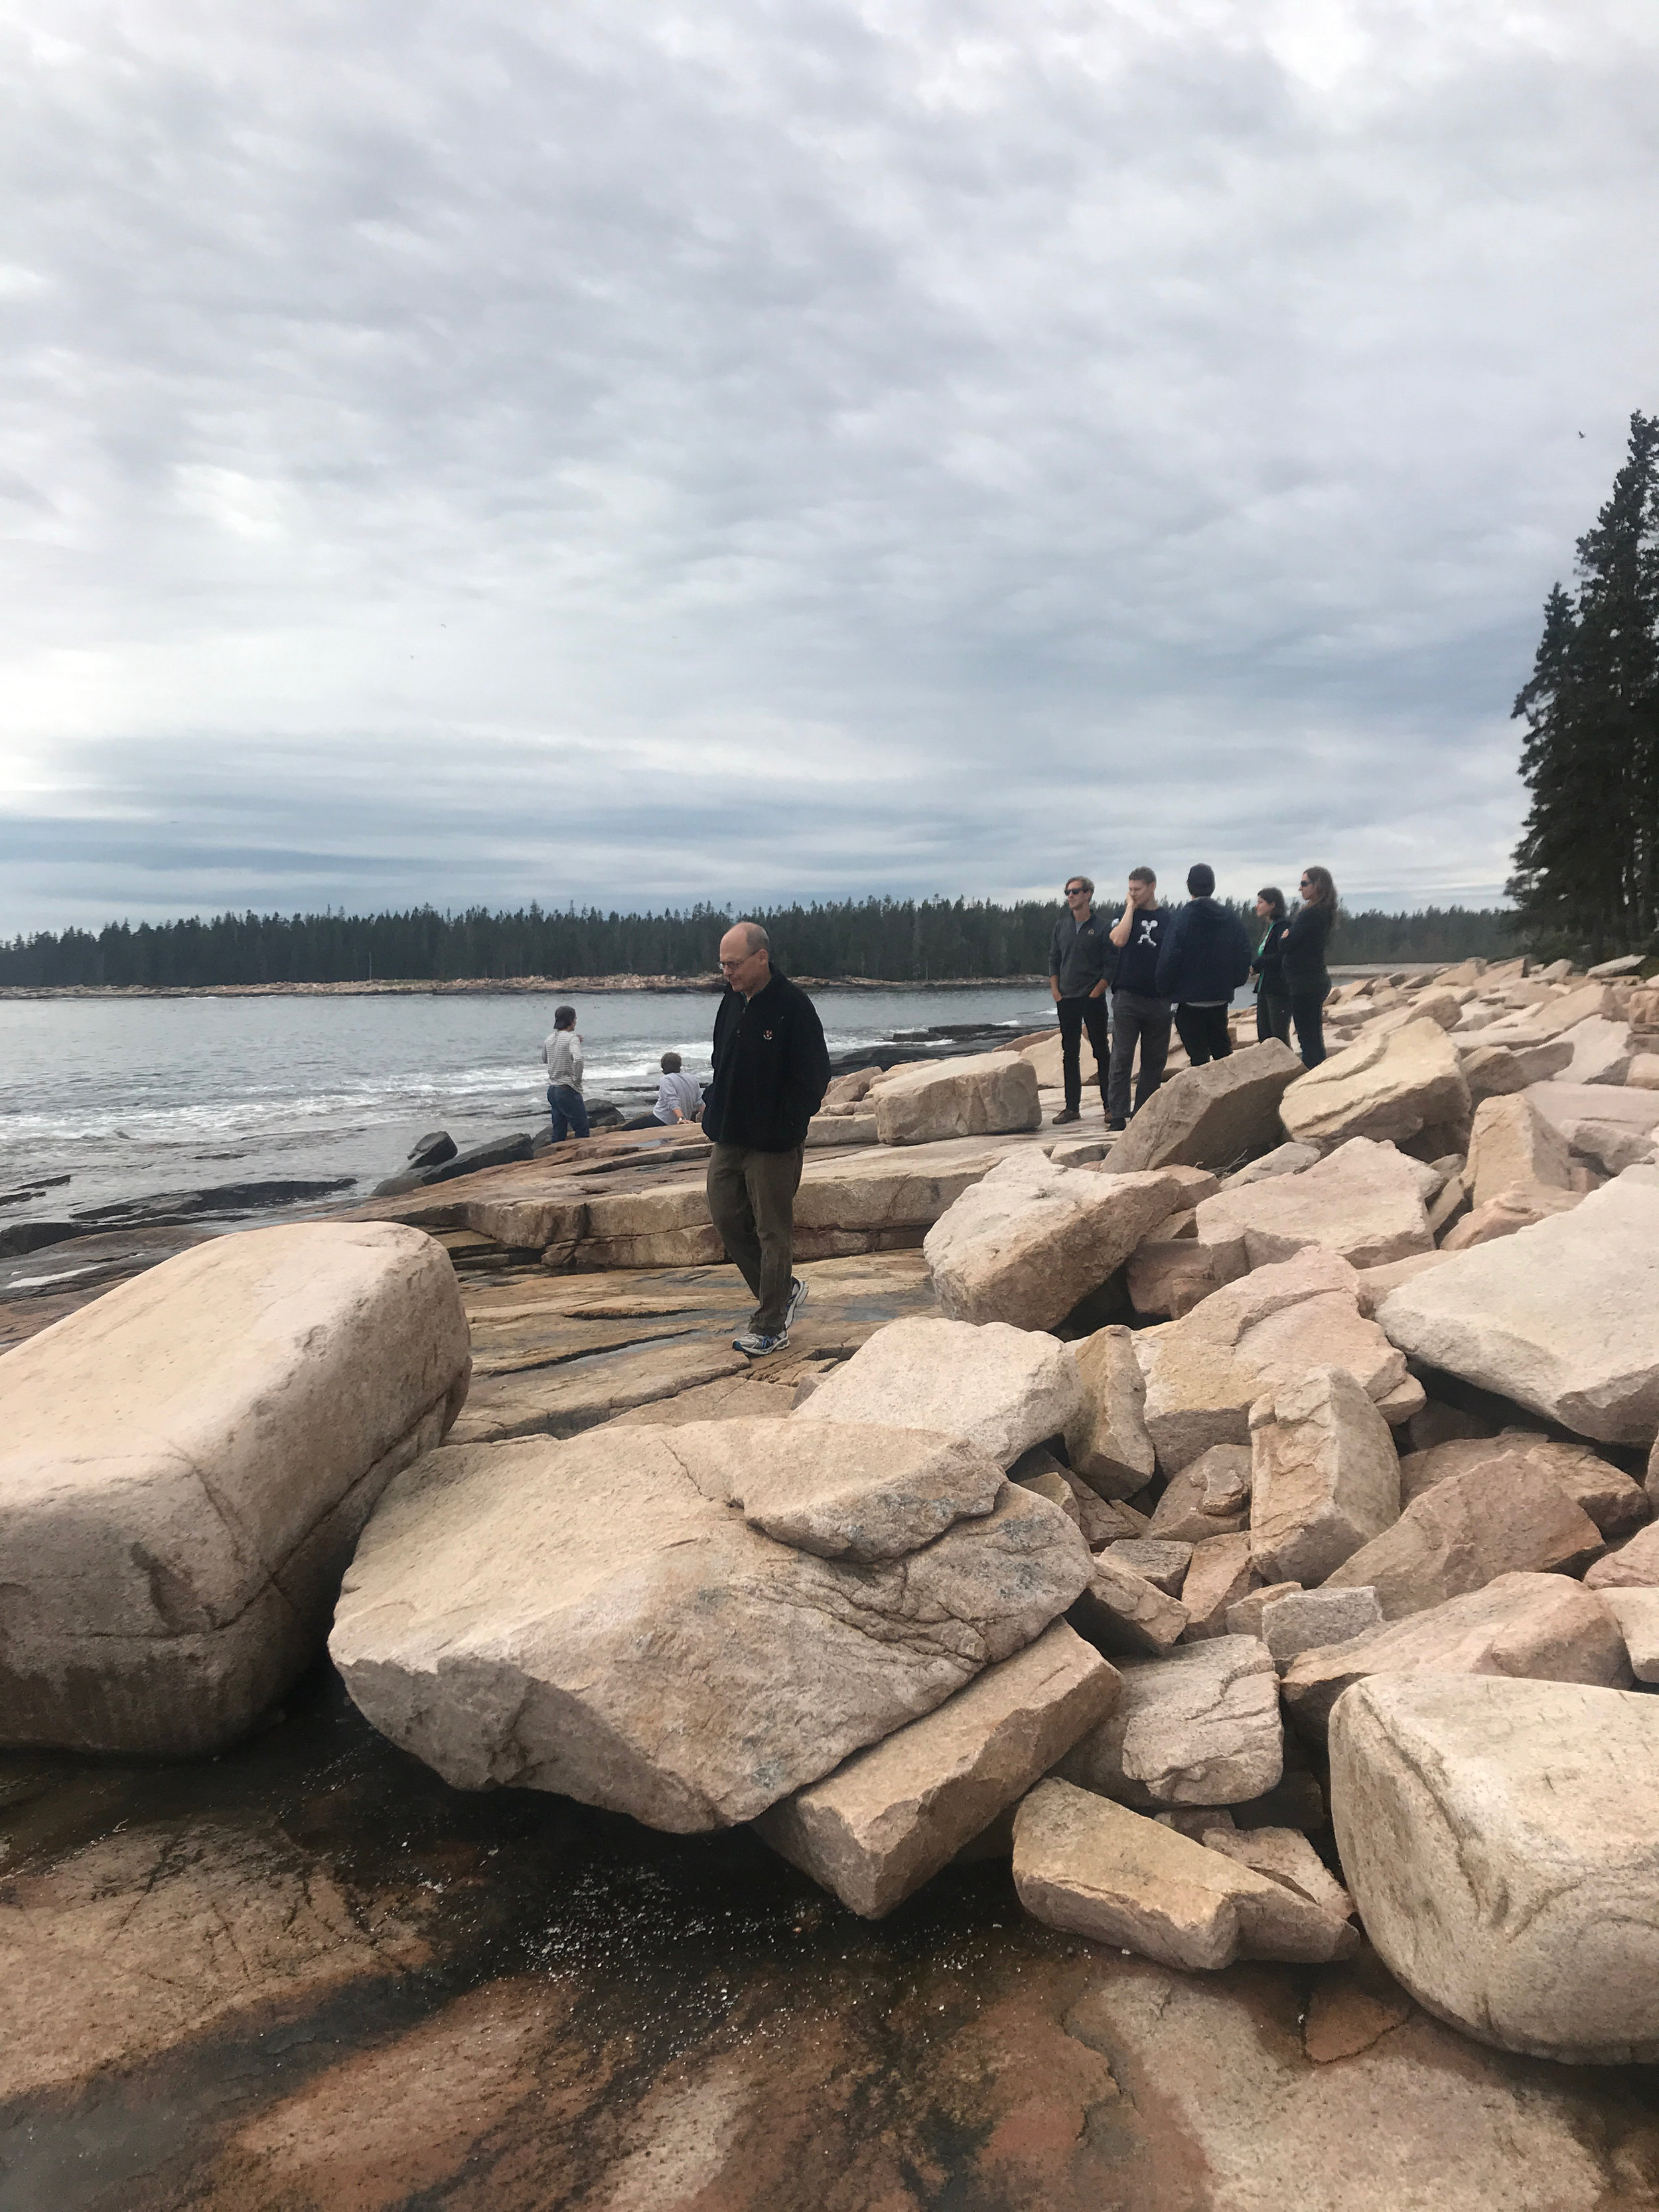 A mid-day hike on the coast